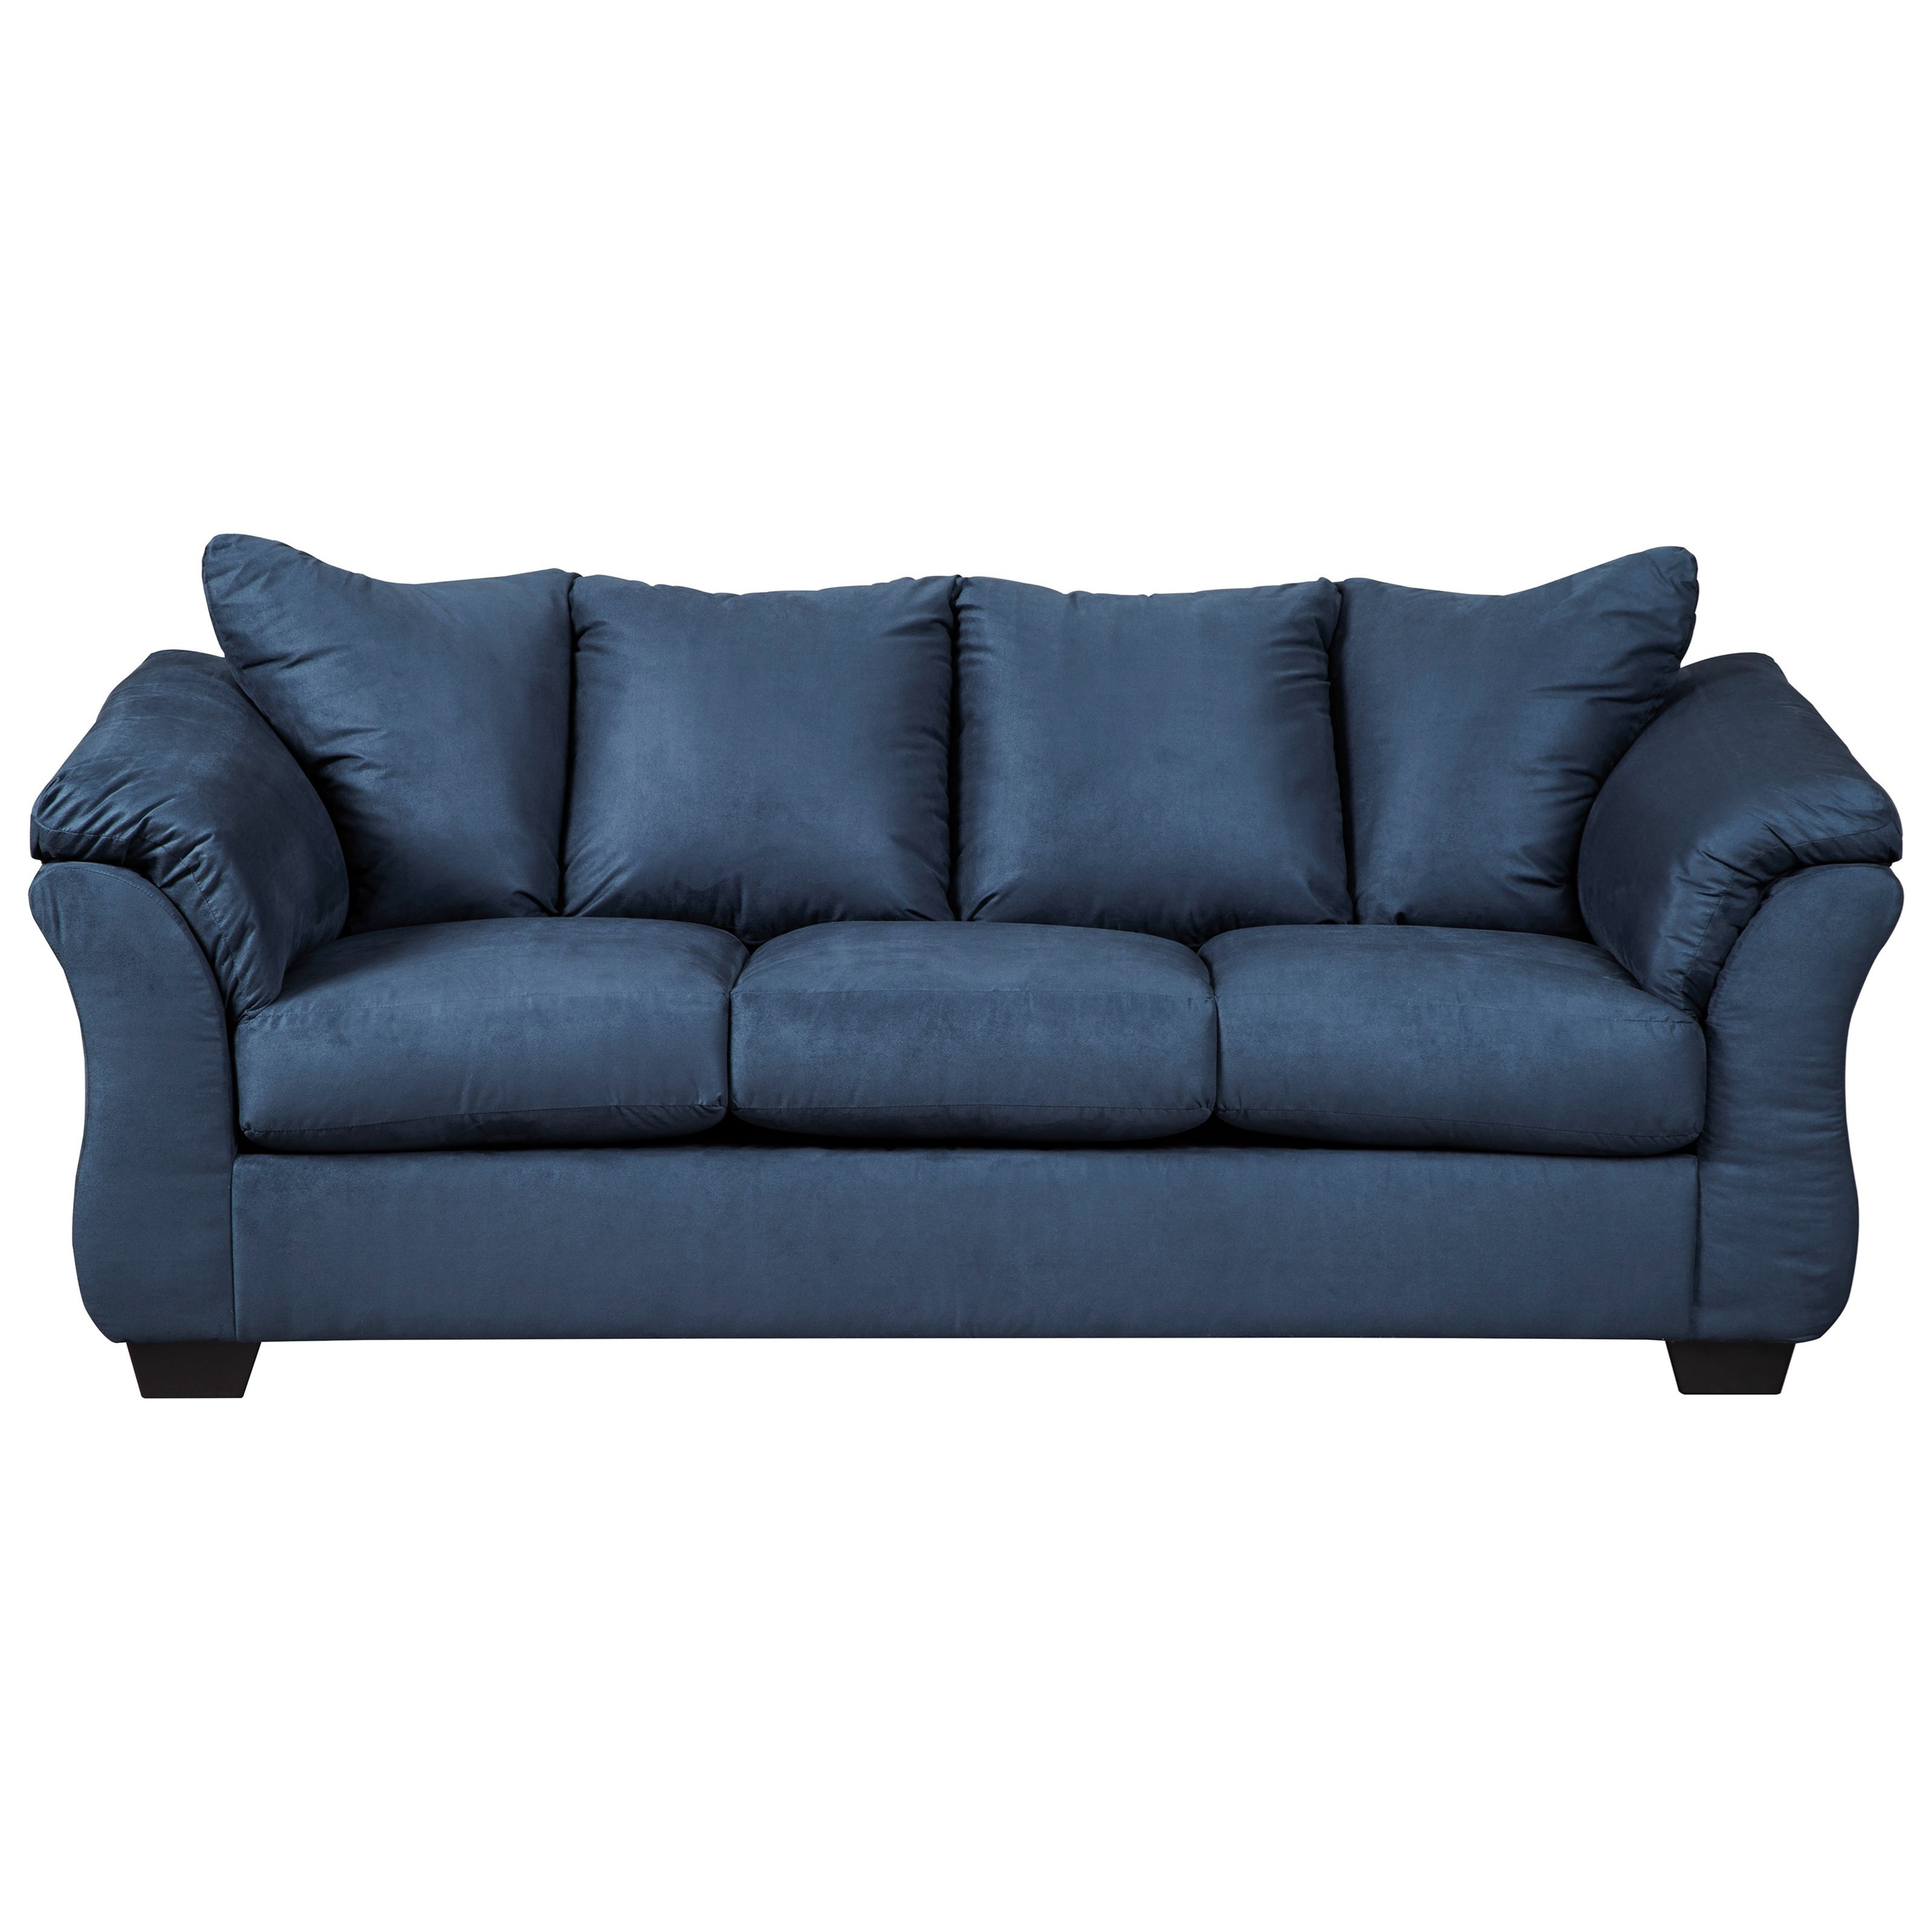 Darcy - Blue Stationary Sofa by Ashley at Morris Home